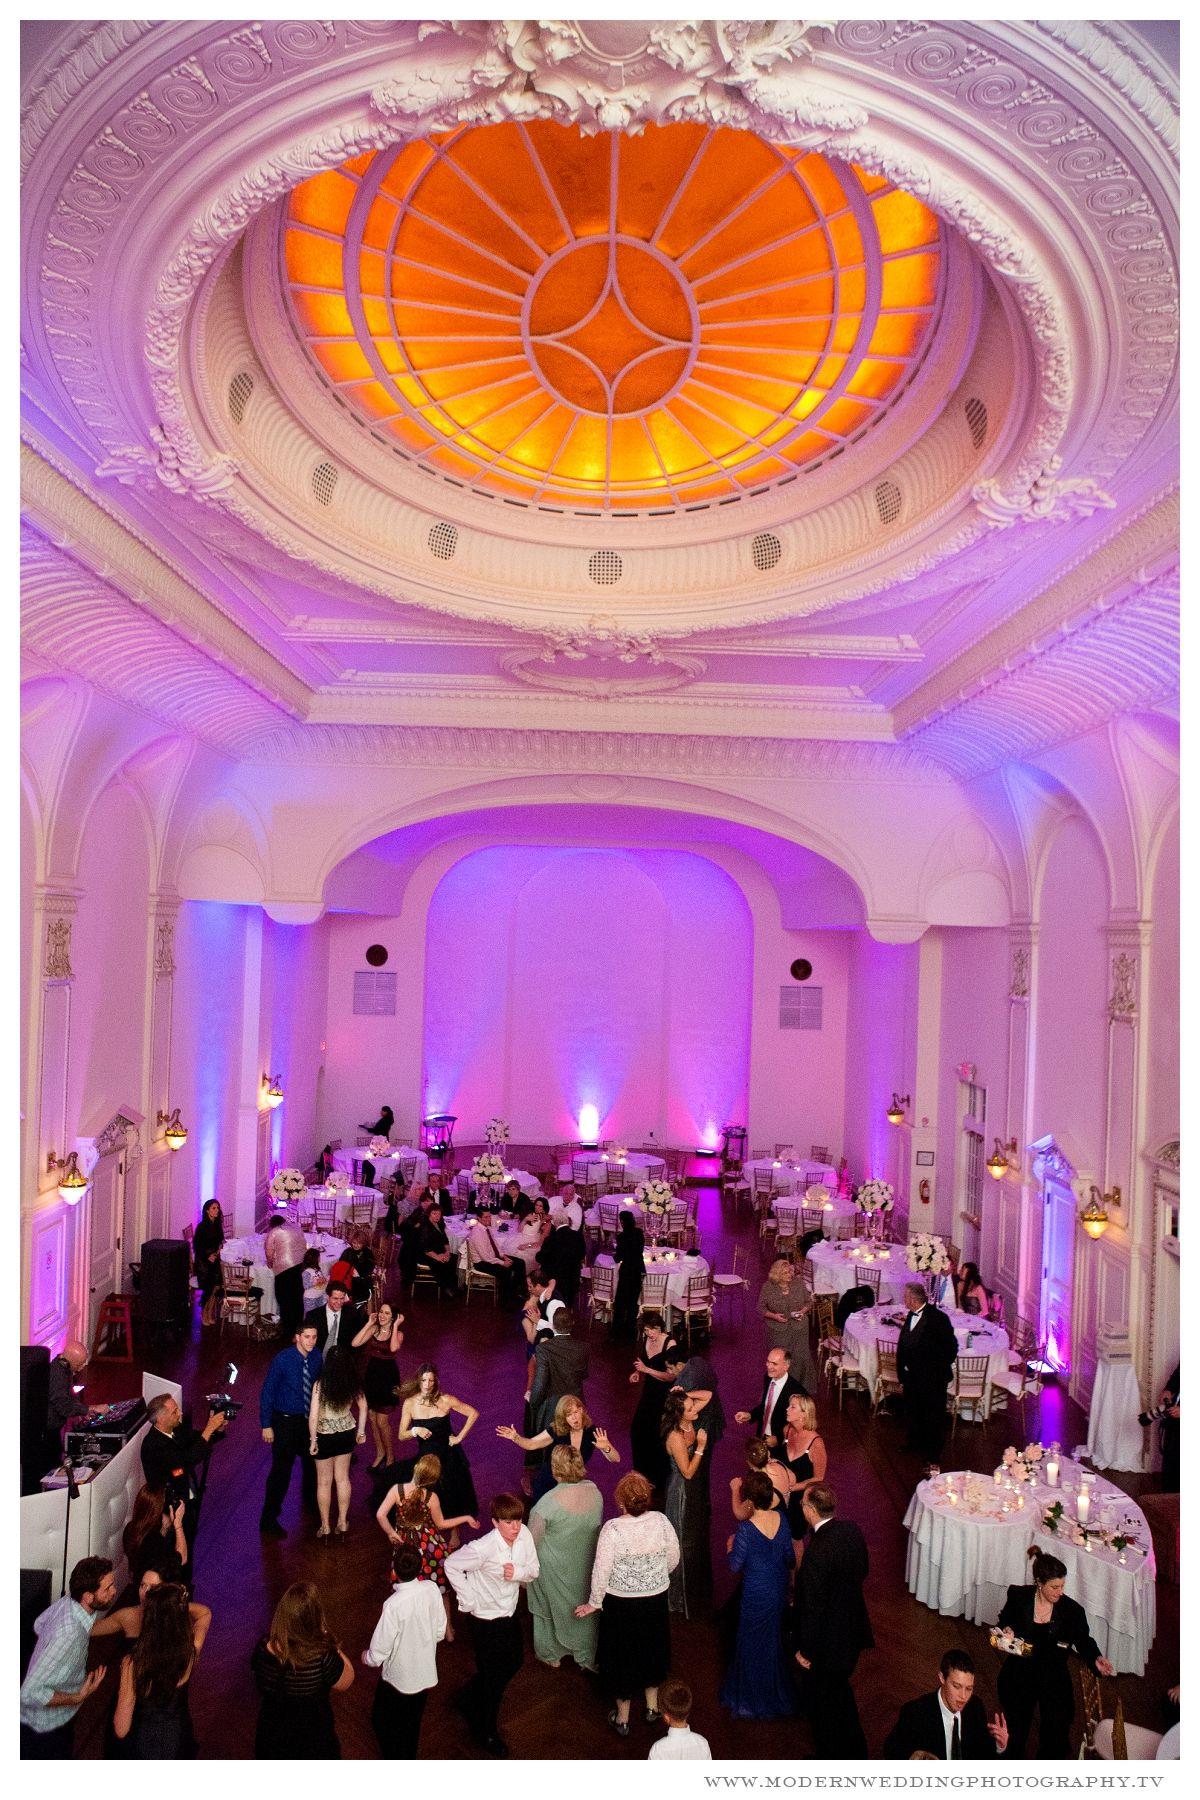 Dance Floor And Ceiling The Bourne Mansion Www Modernweddingphotography Tv